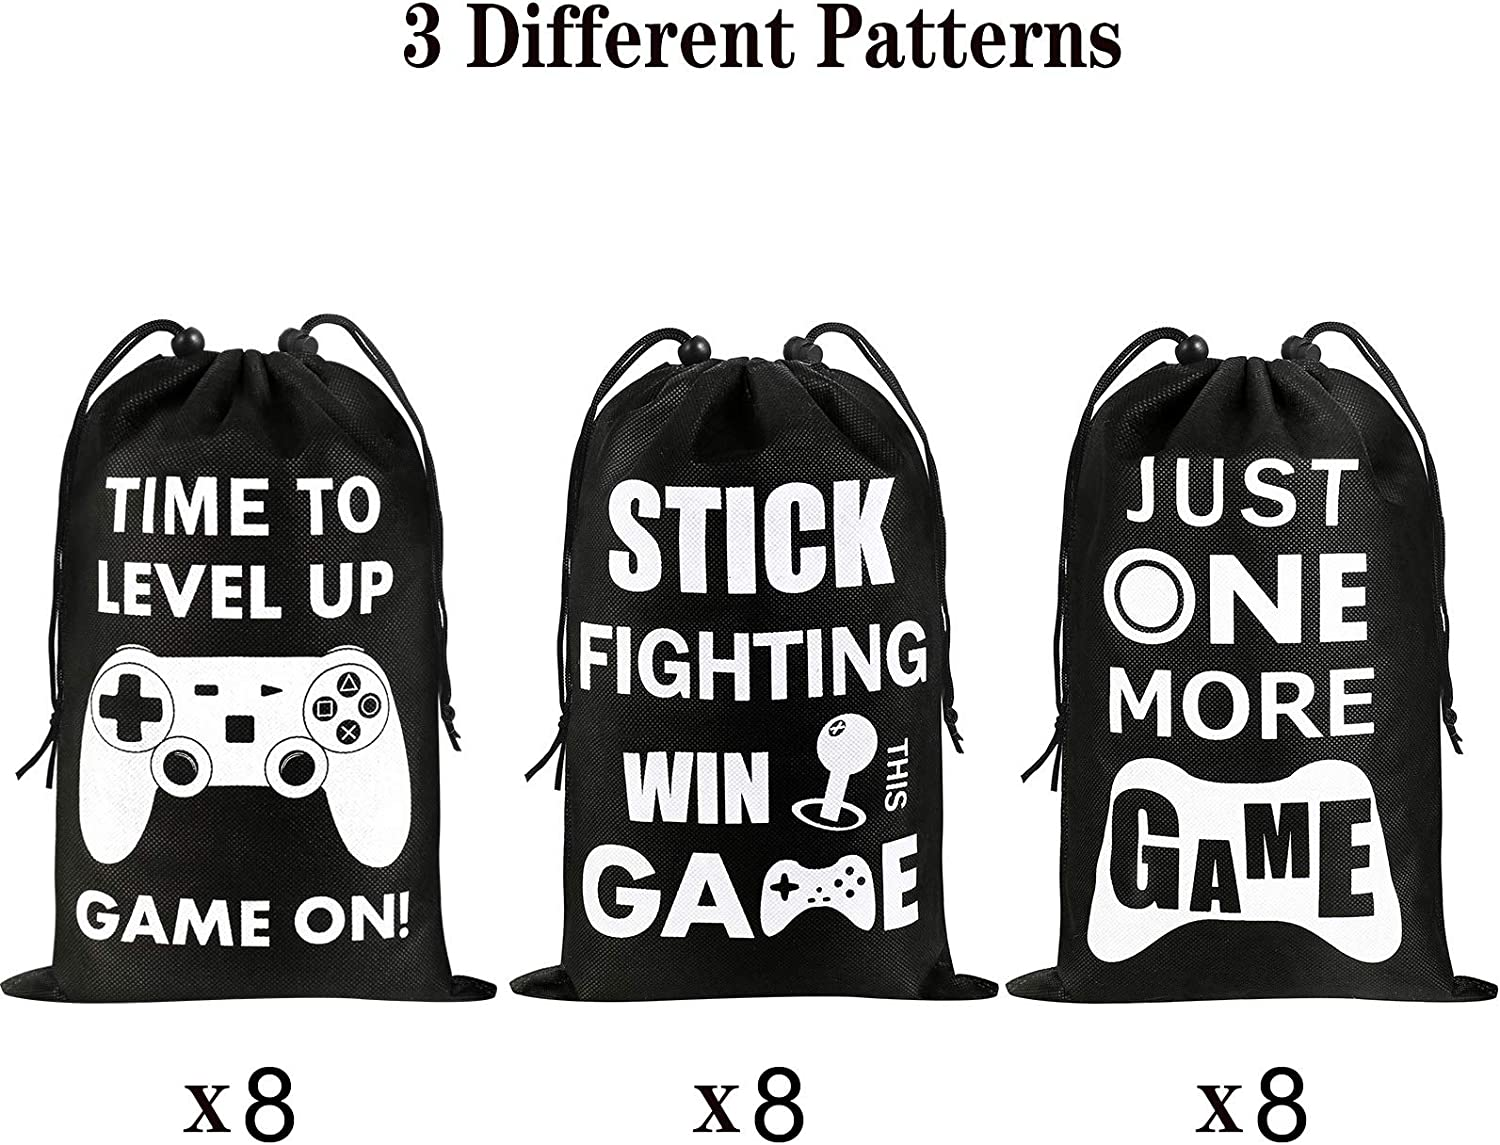 3-Patterns AhlsenL 24 Pack Video Game Party Supplies Gaming Party Bags Drawstring Bags Gaming Party Decorations for Kids Video Game Themed Birthday Party